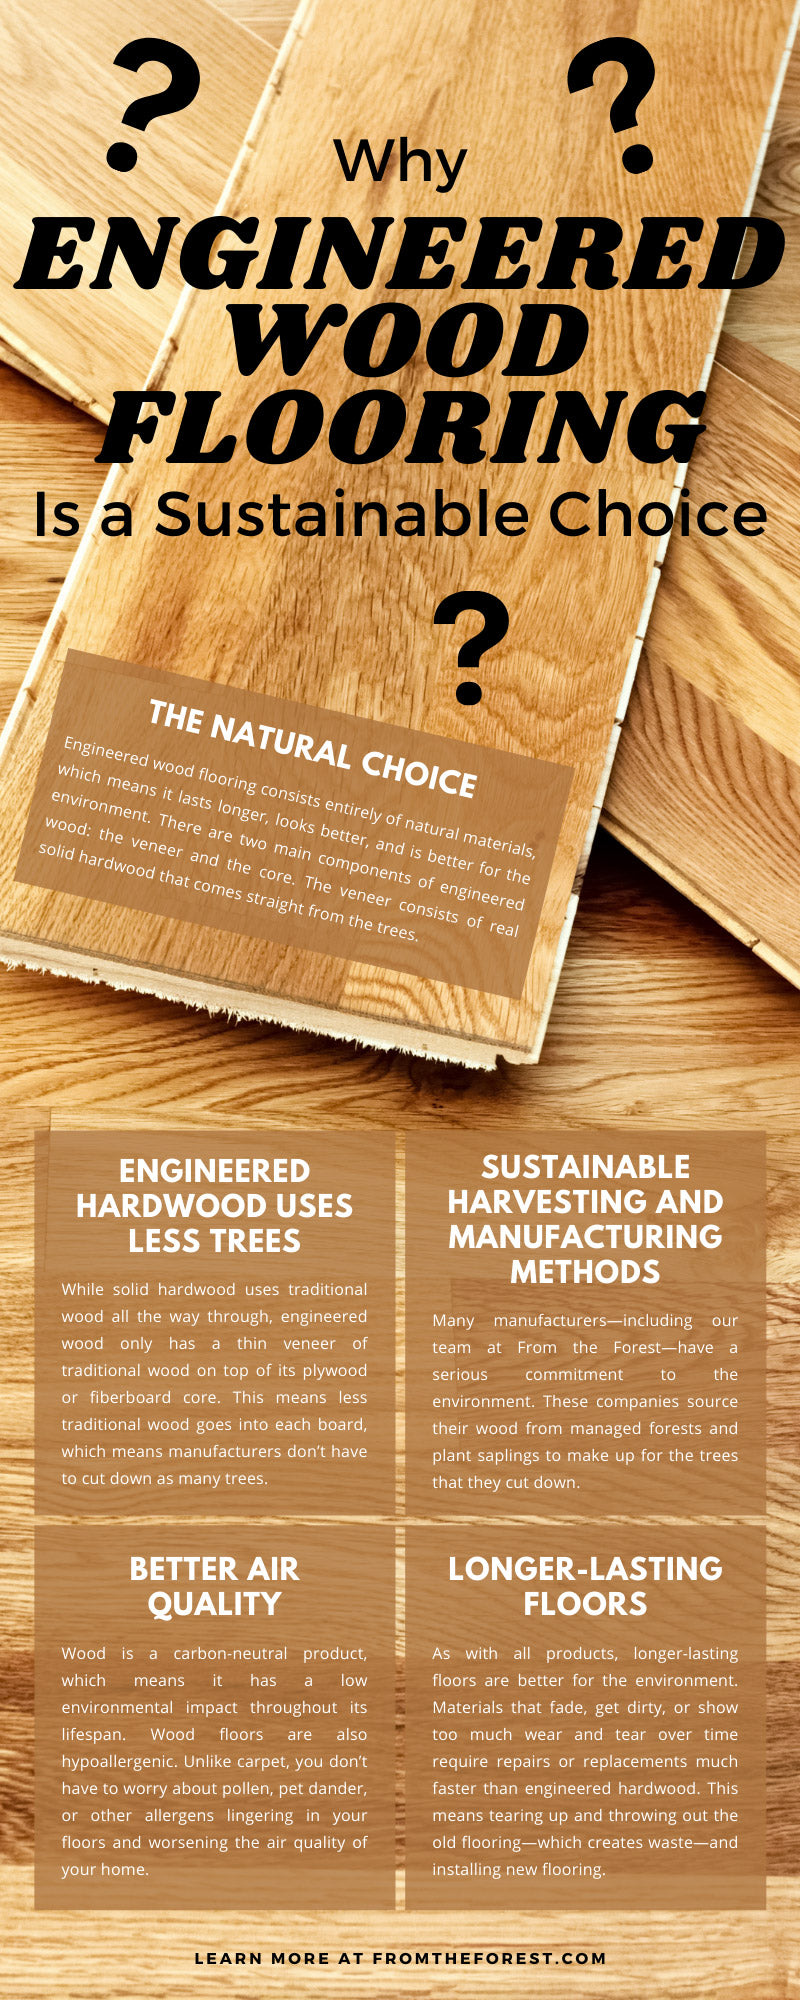 Why Engineered Wood Flooring Is a Sustainable Choice